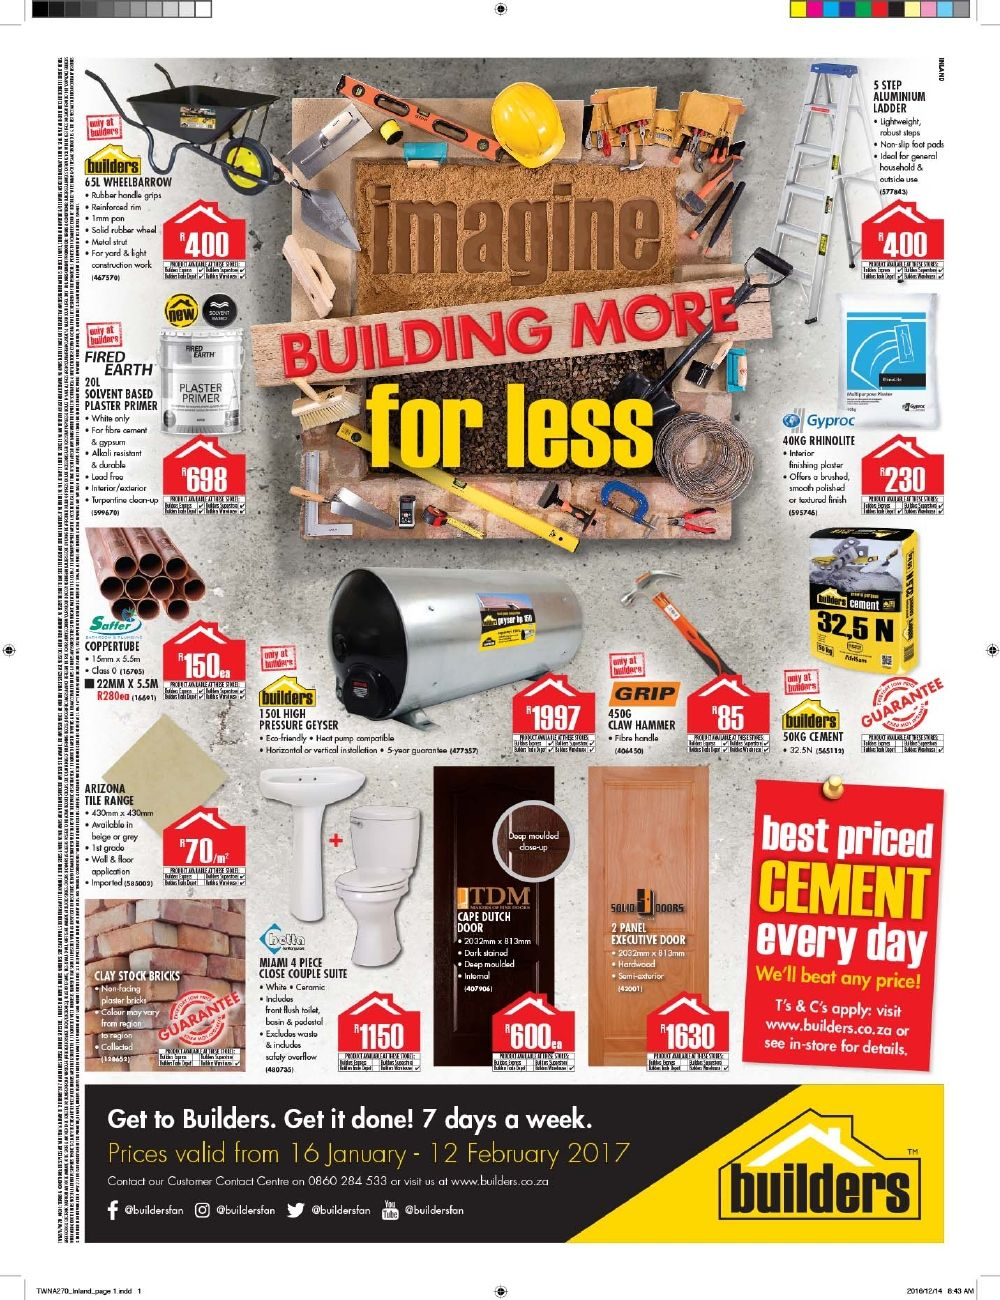 Builders Warehouse Catalogue Specials Http Www Catalogueza Com Builders Warehouse Specials Builders Warehouse Builder Free Tv Channels